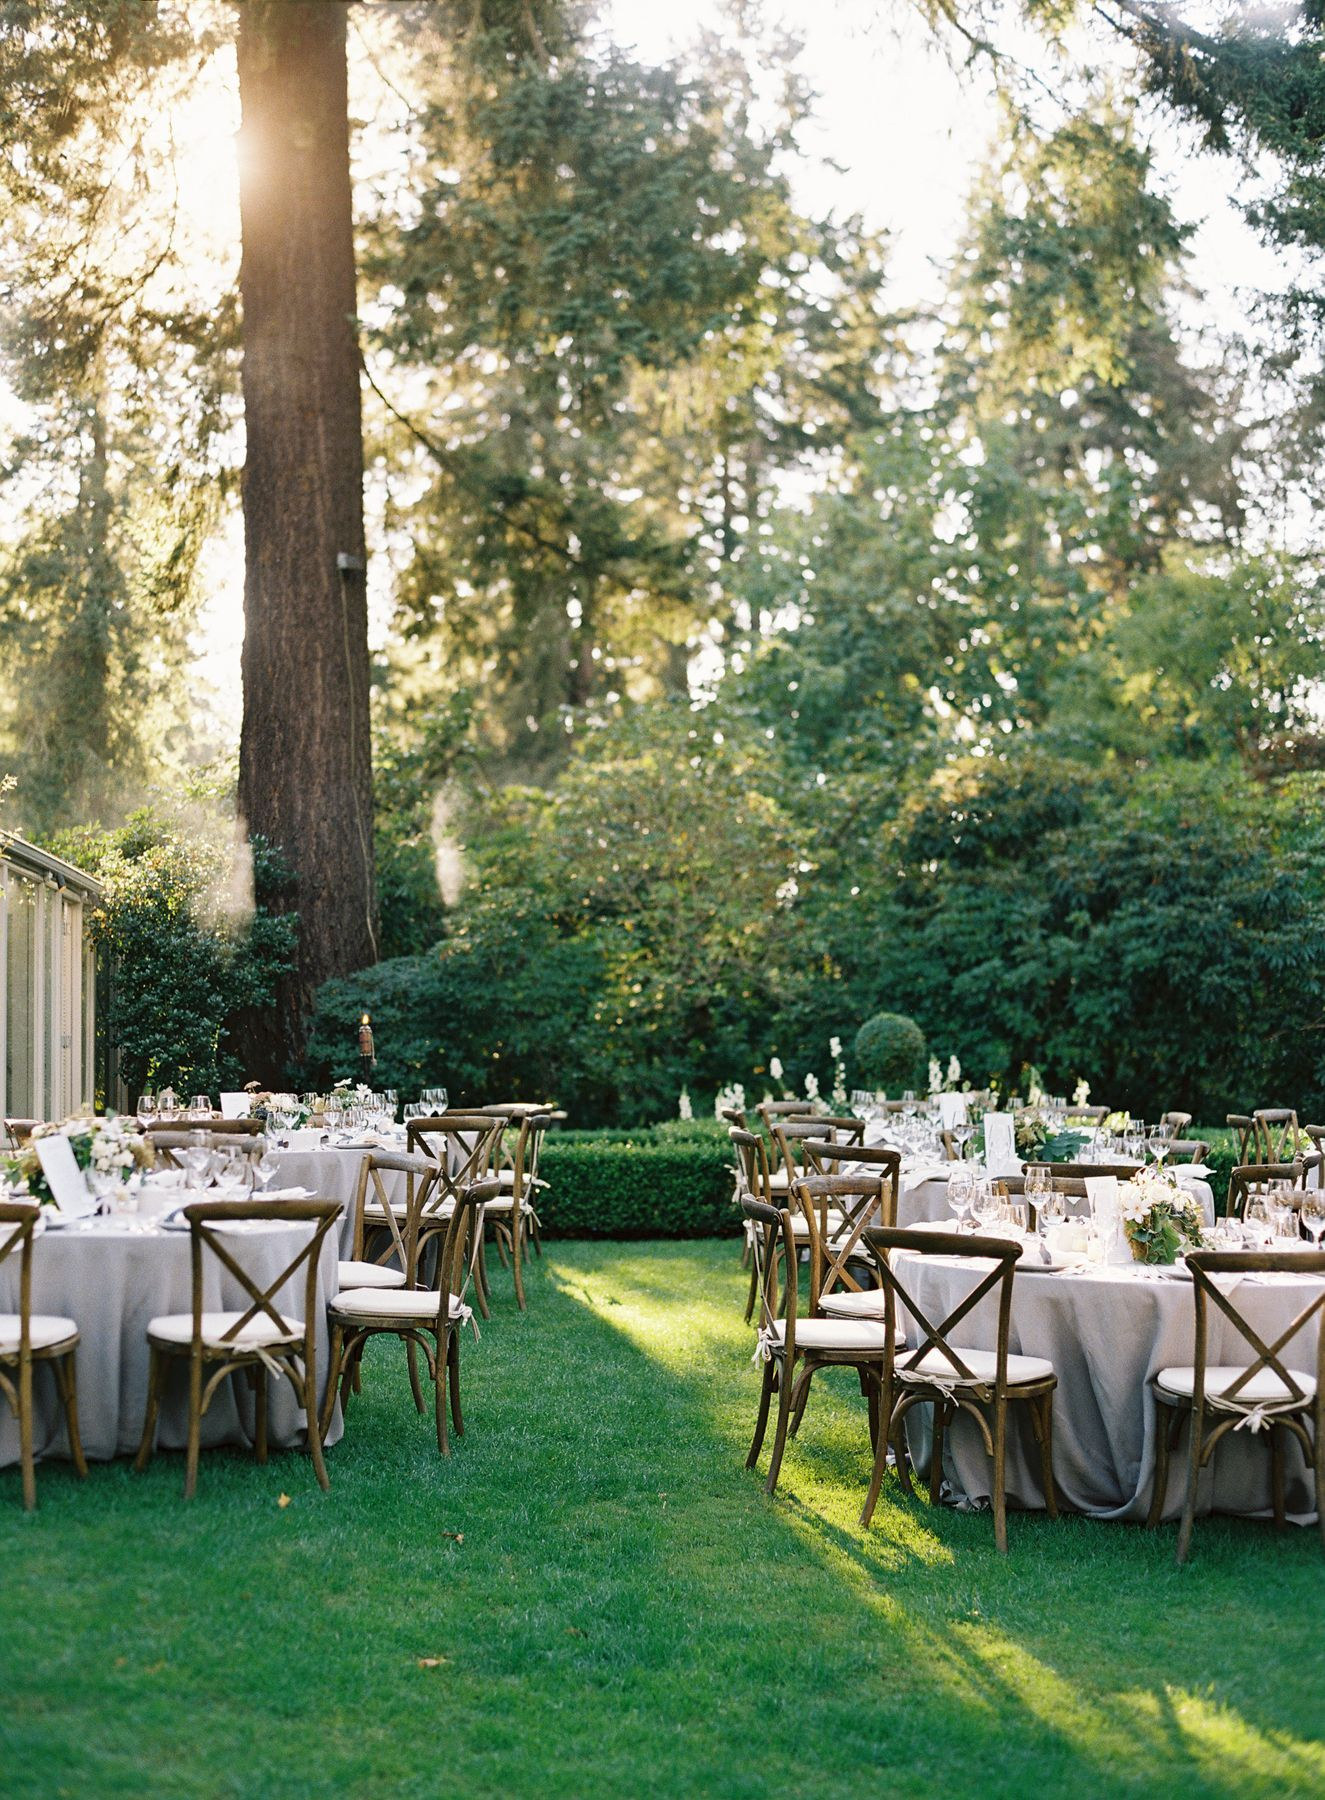 Elegant Garden Wedding Reception  Real Weddings  Oncewedcom